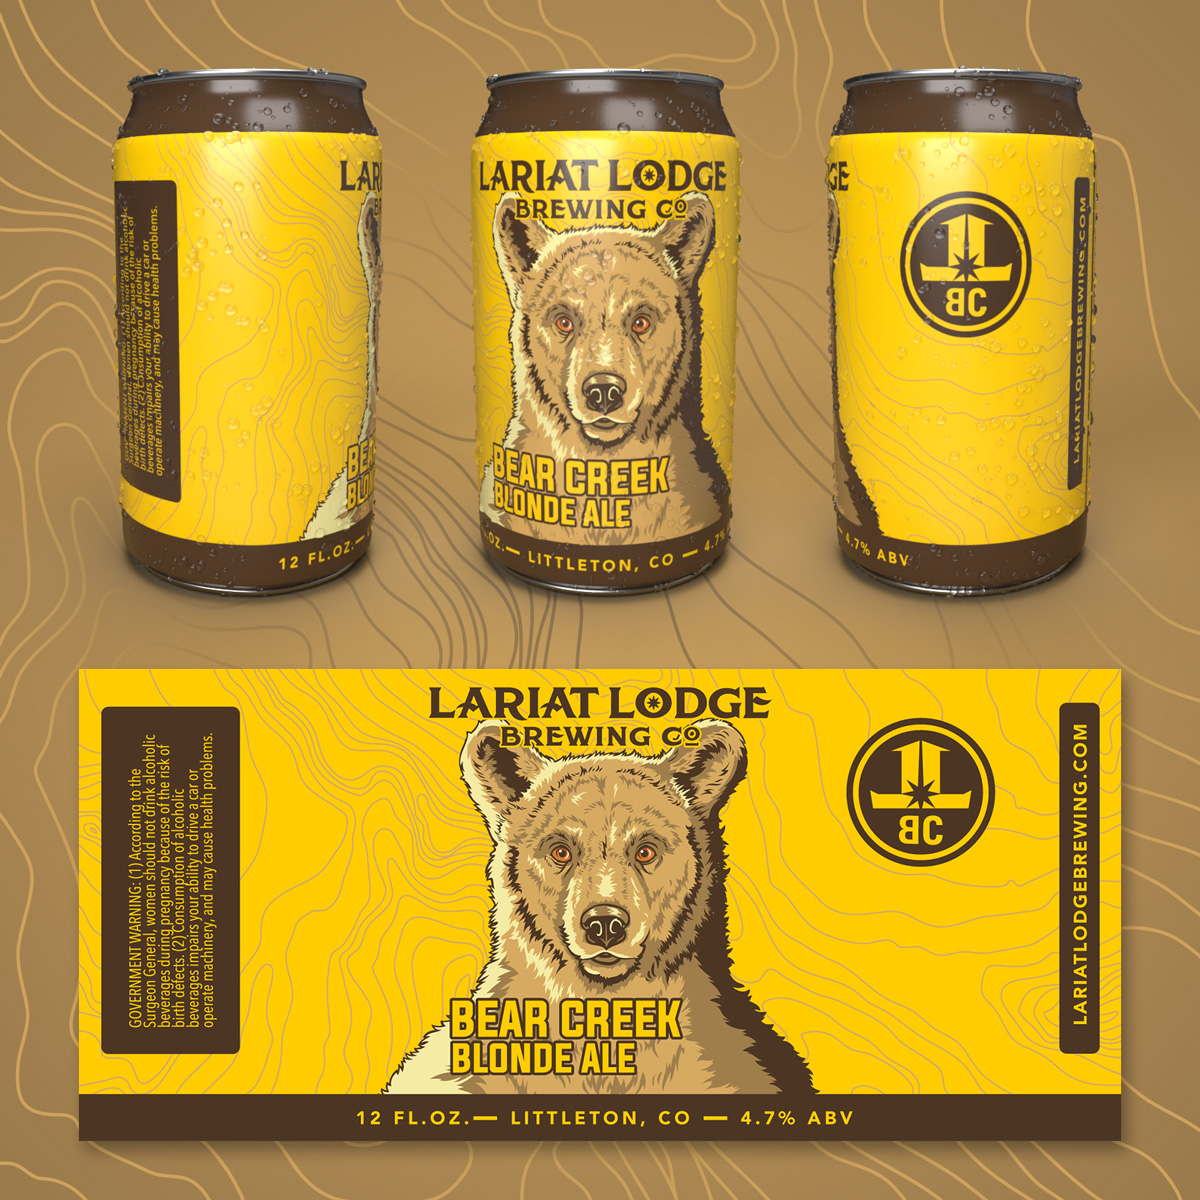 blonde ale beer label design, beer label design, colorado beer label, colorado beer, colorado microbeer, amber beer label, beer label design, beer can label design, hi-five design